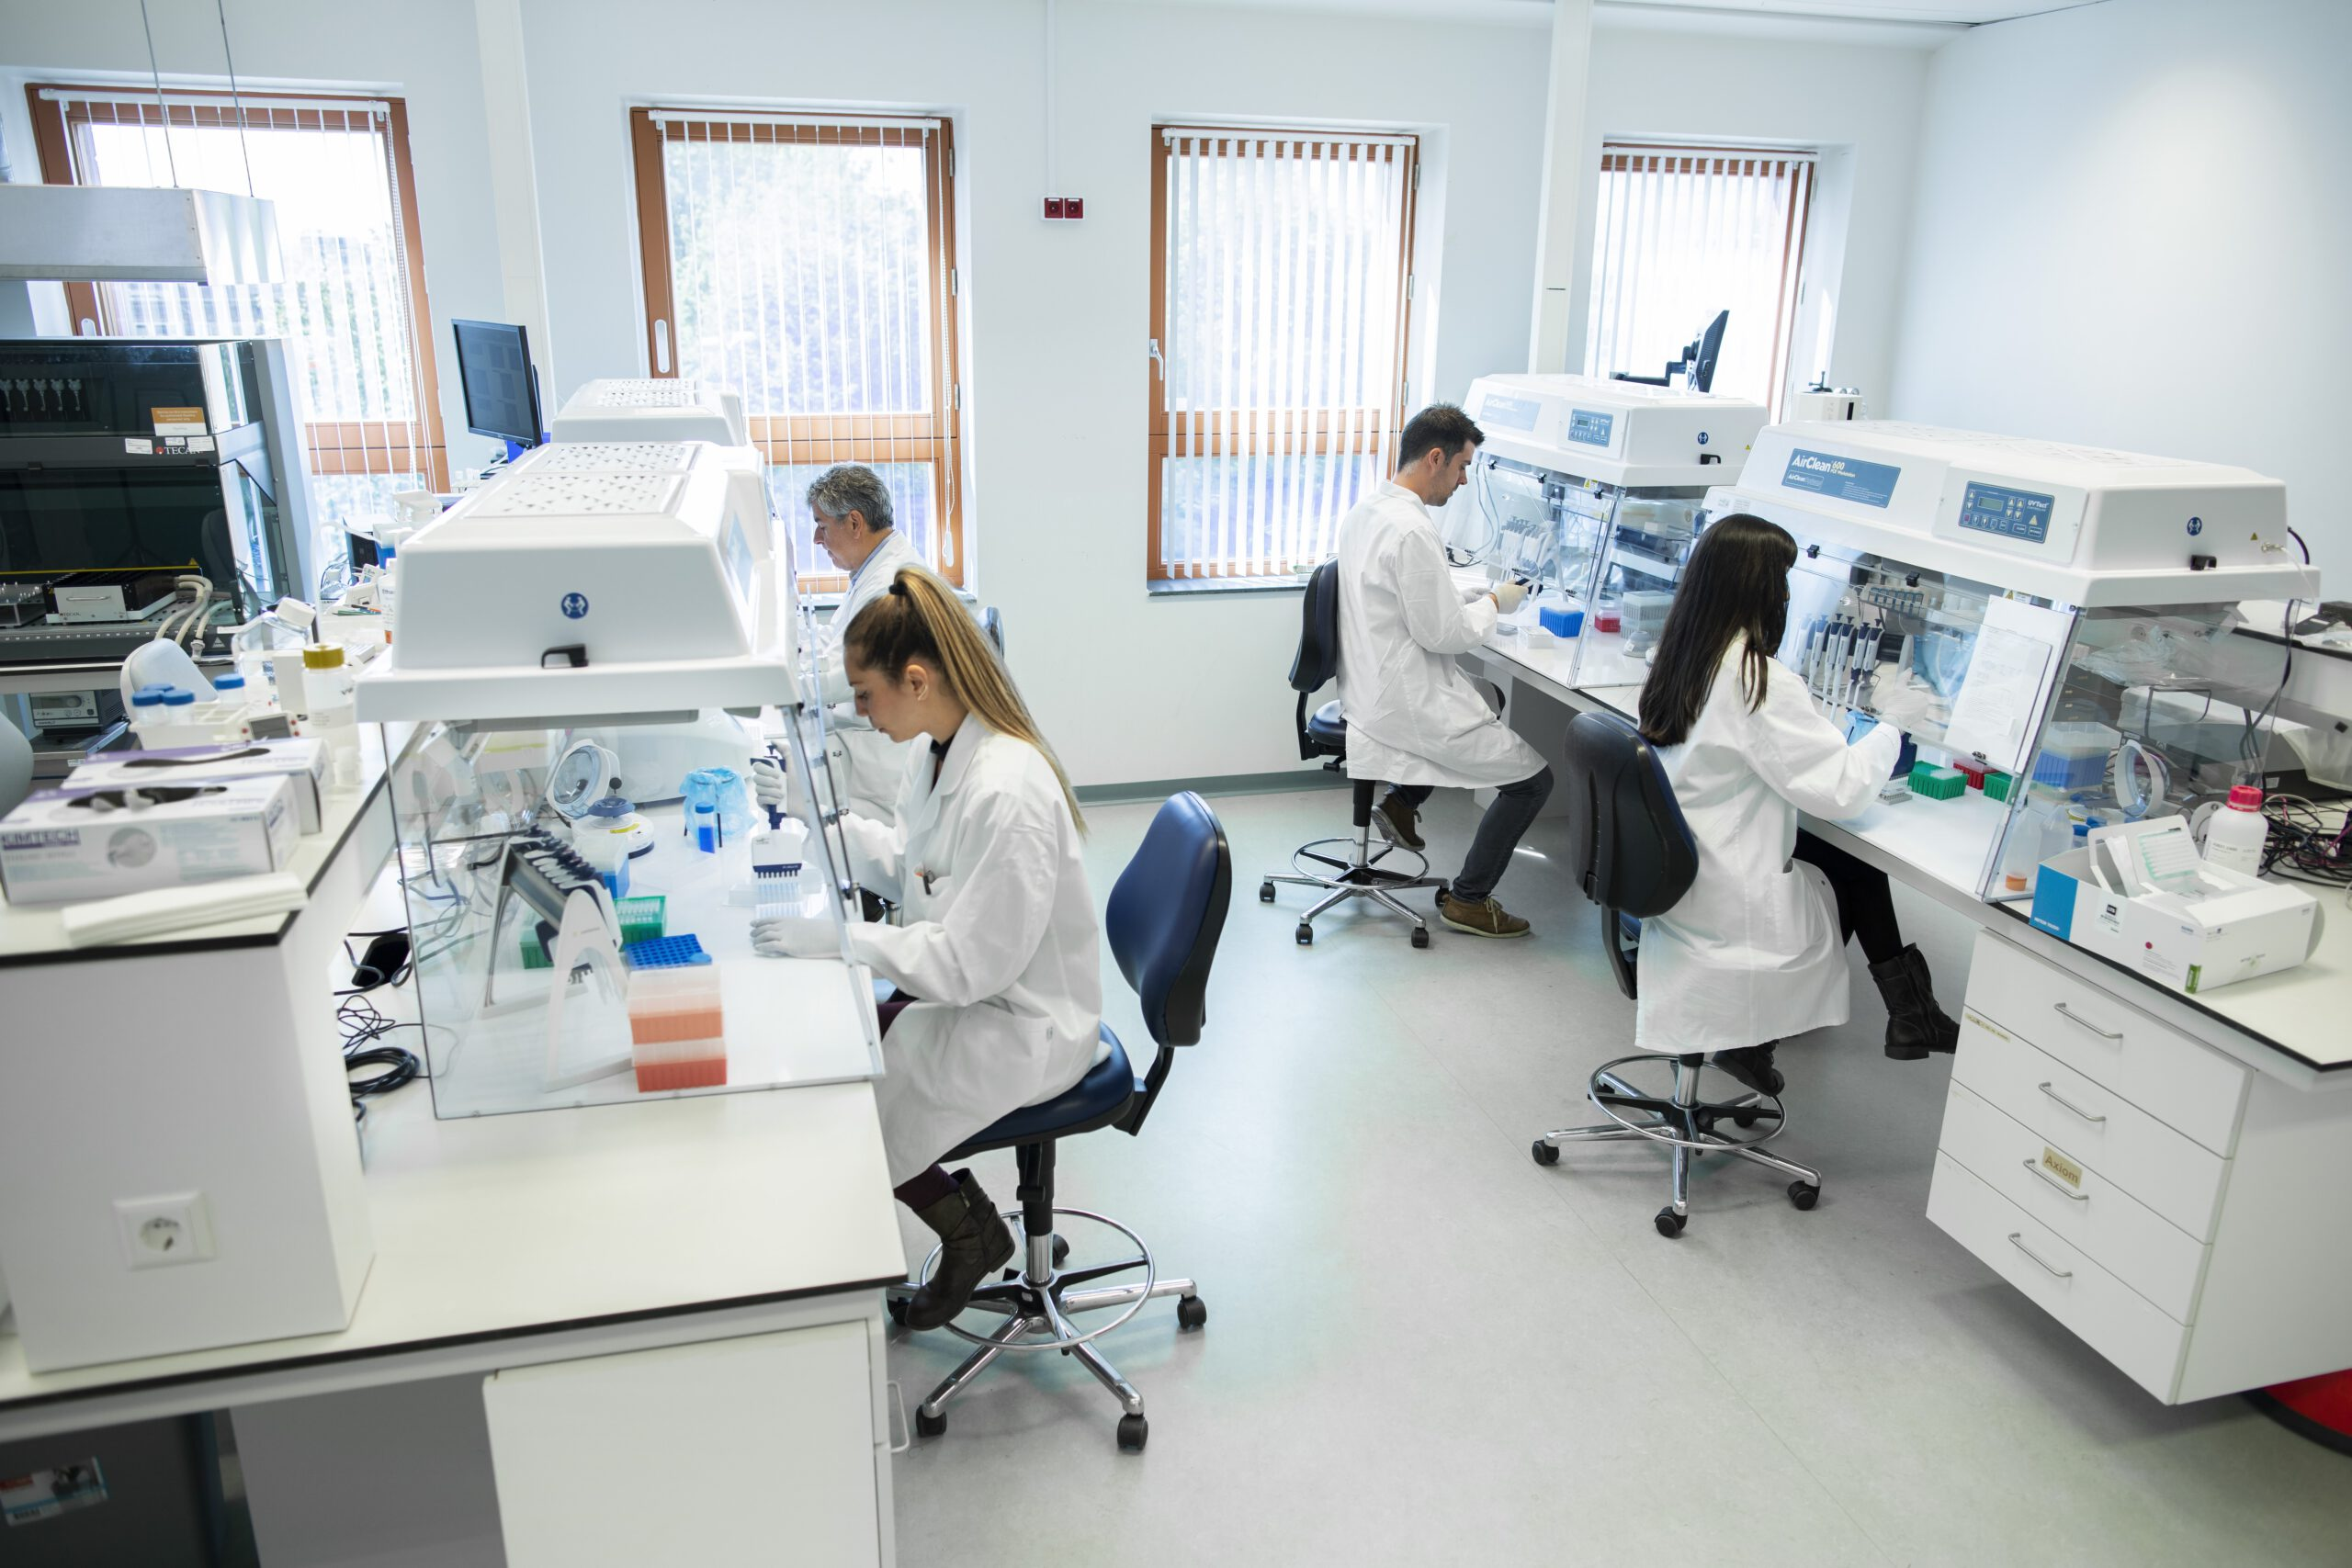 05.2019 Four people in the lab Coronavirus Updates at GenomeScan